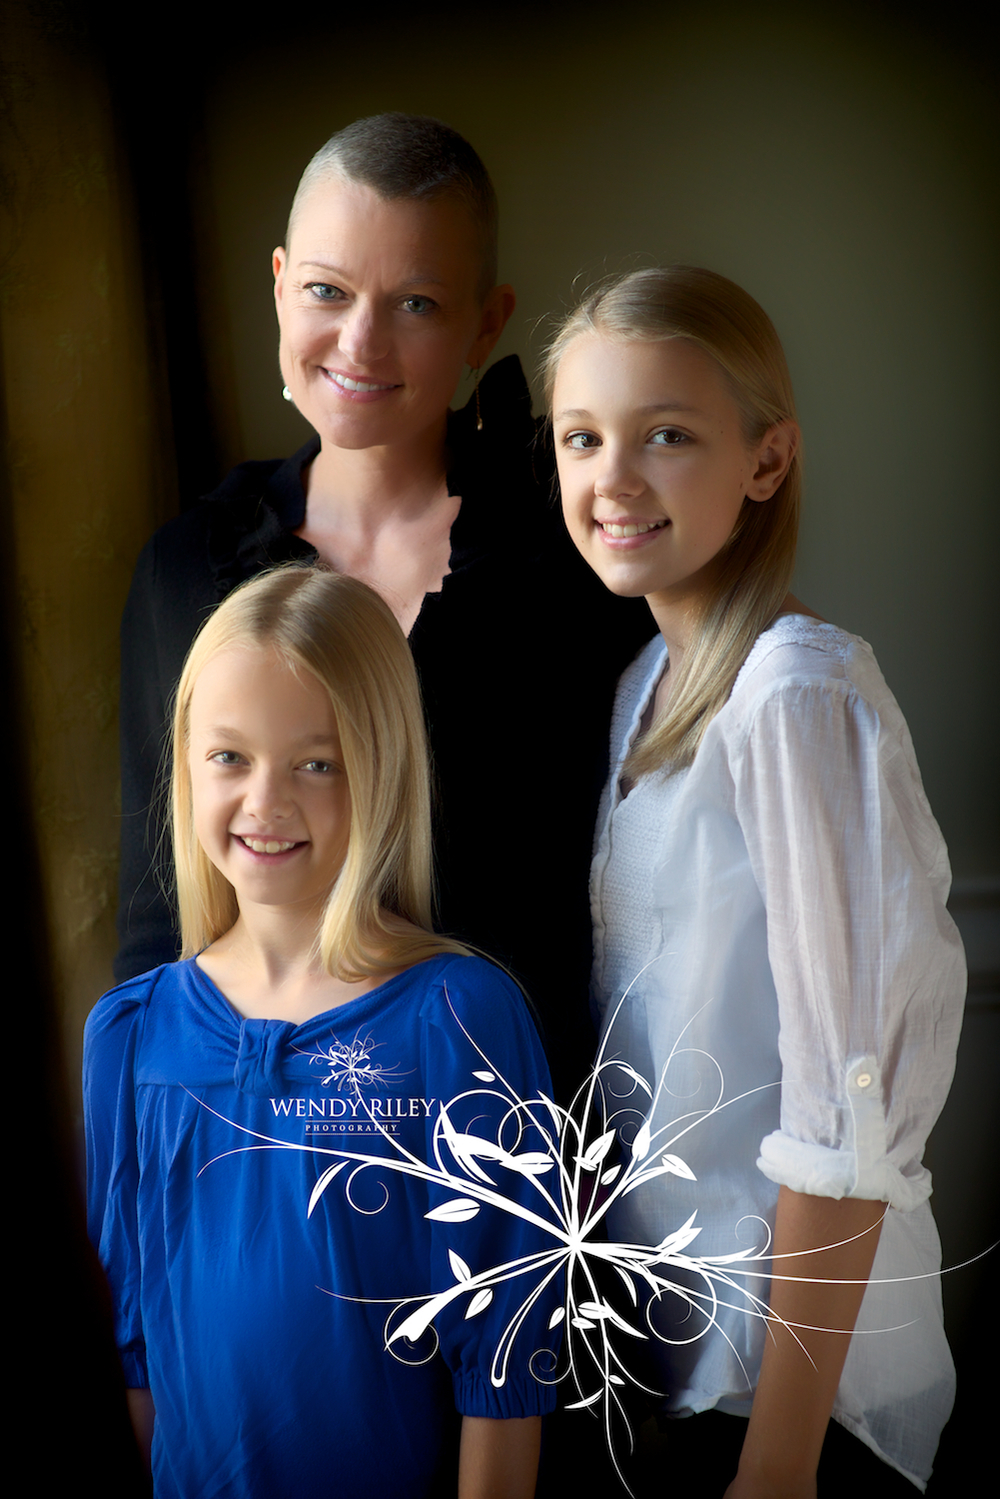 The sweet girls that have the same beauty and strength as their sweet Mama!